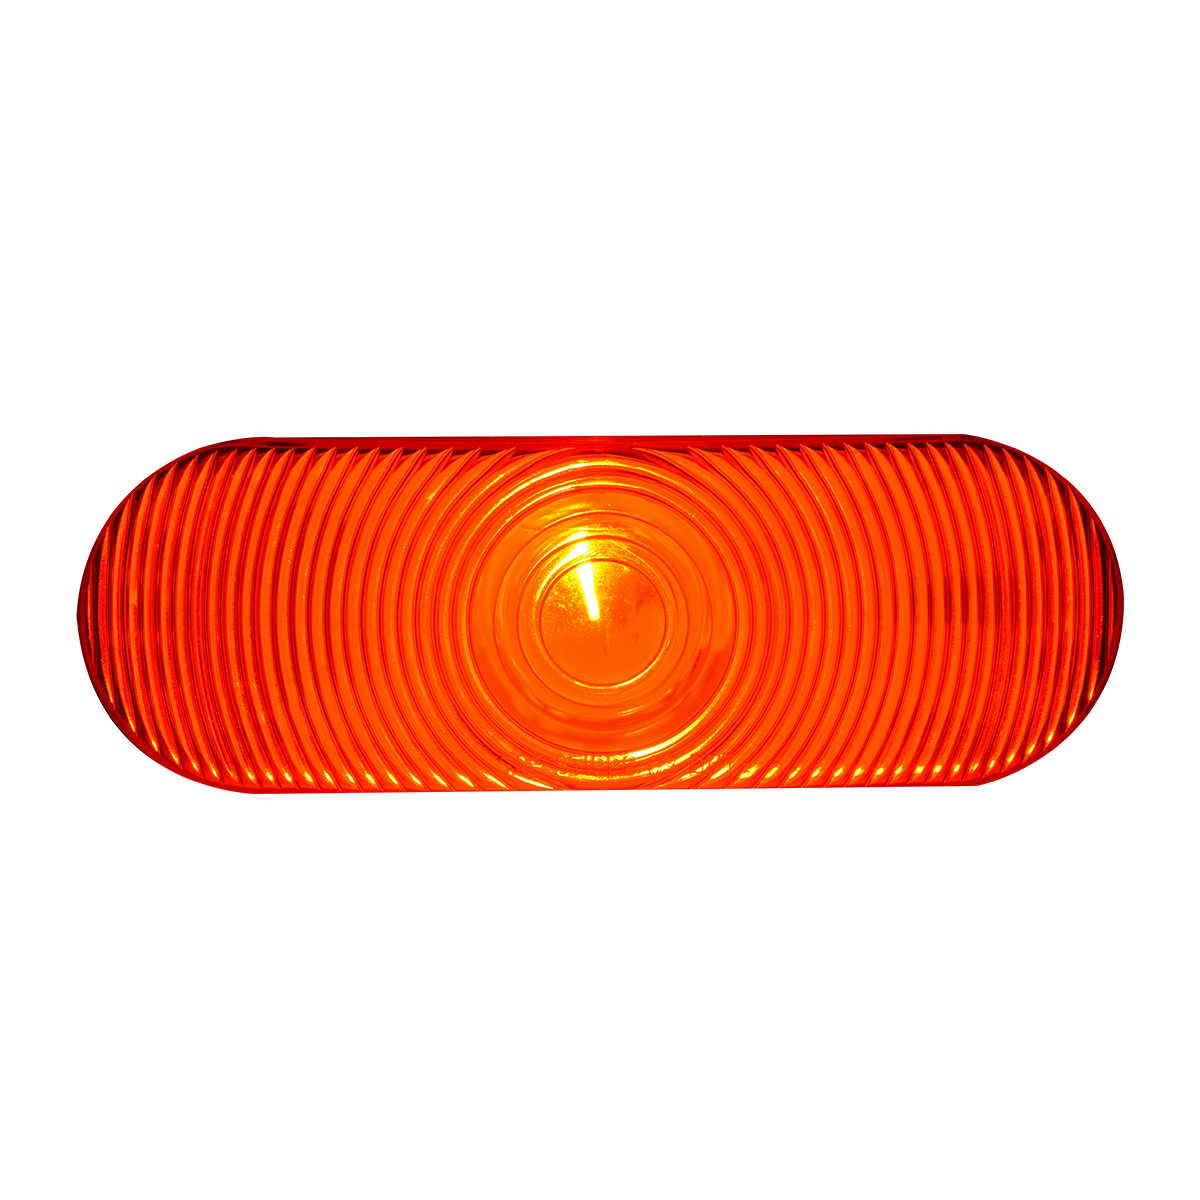 #80805 Oval Incandescent Flat Red/Red Light